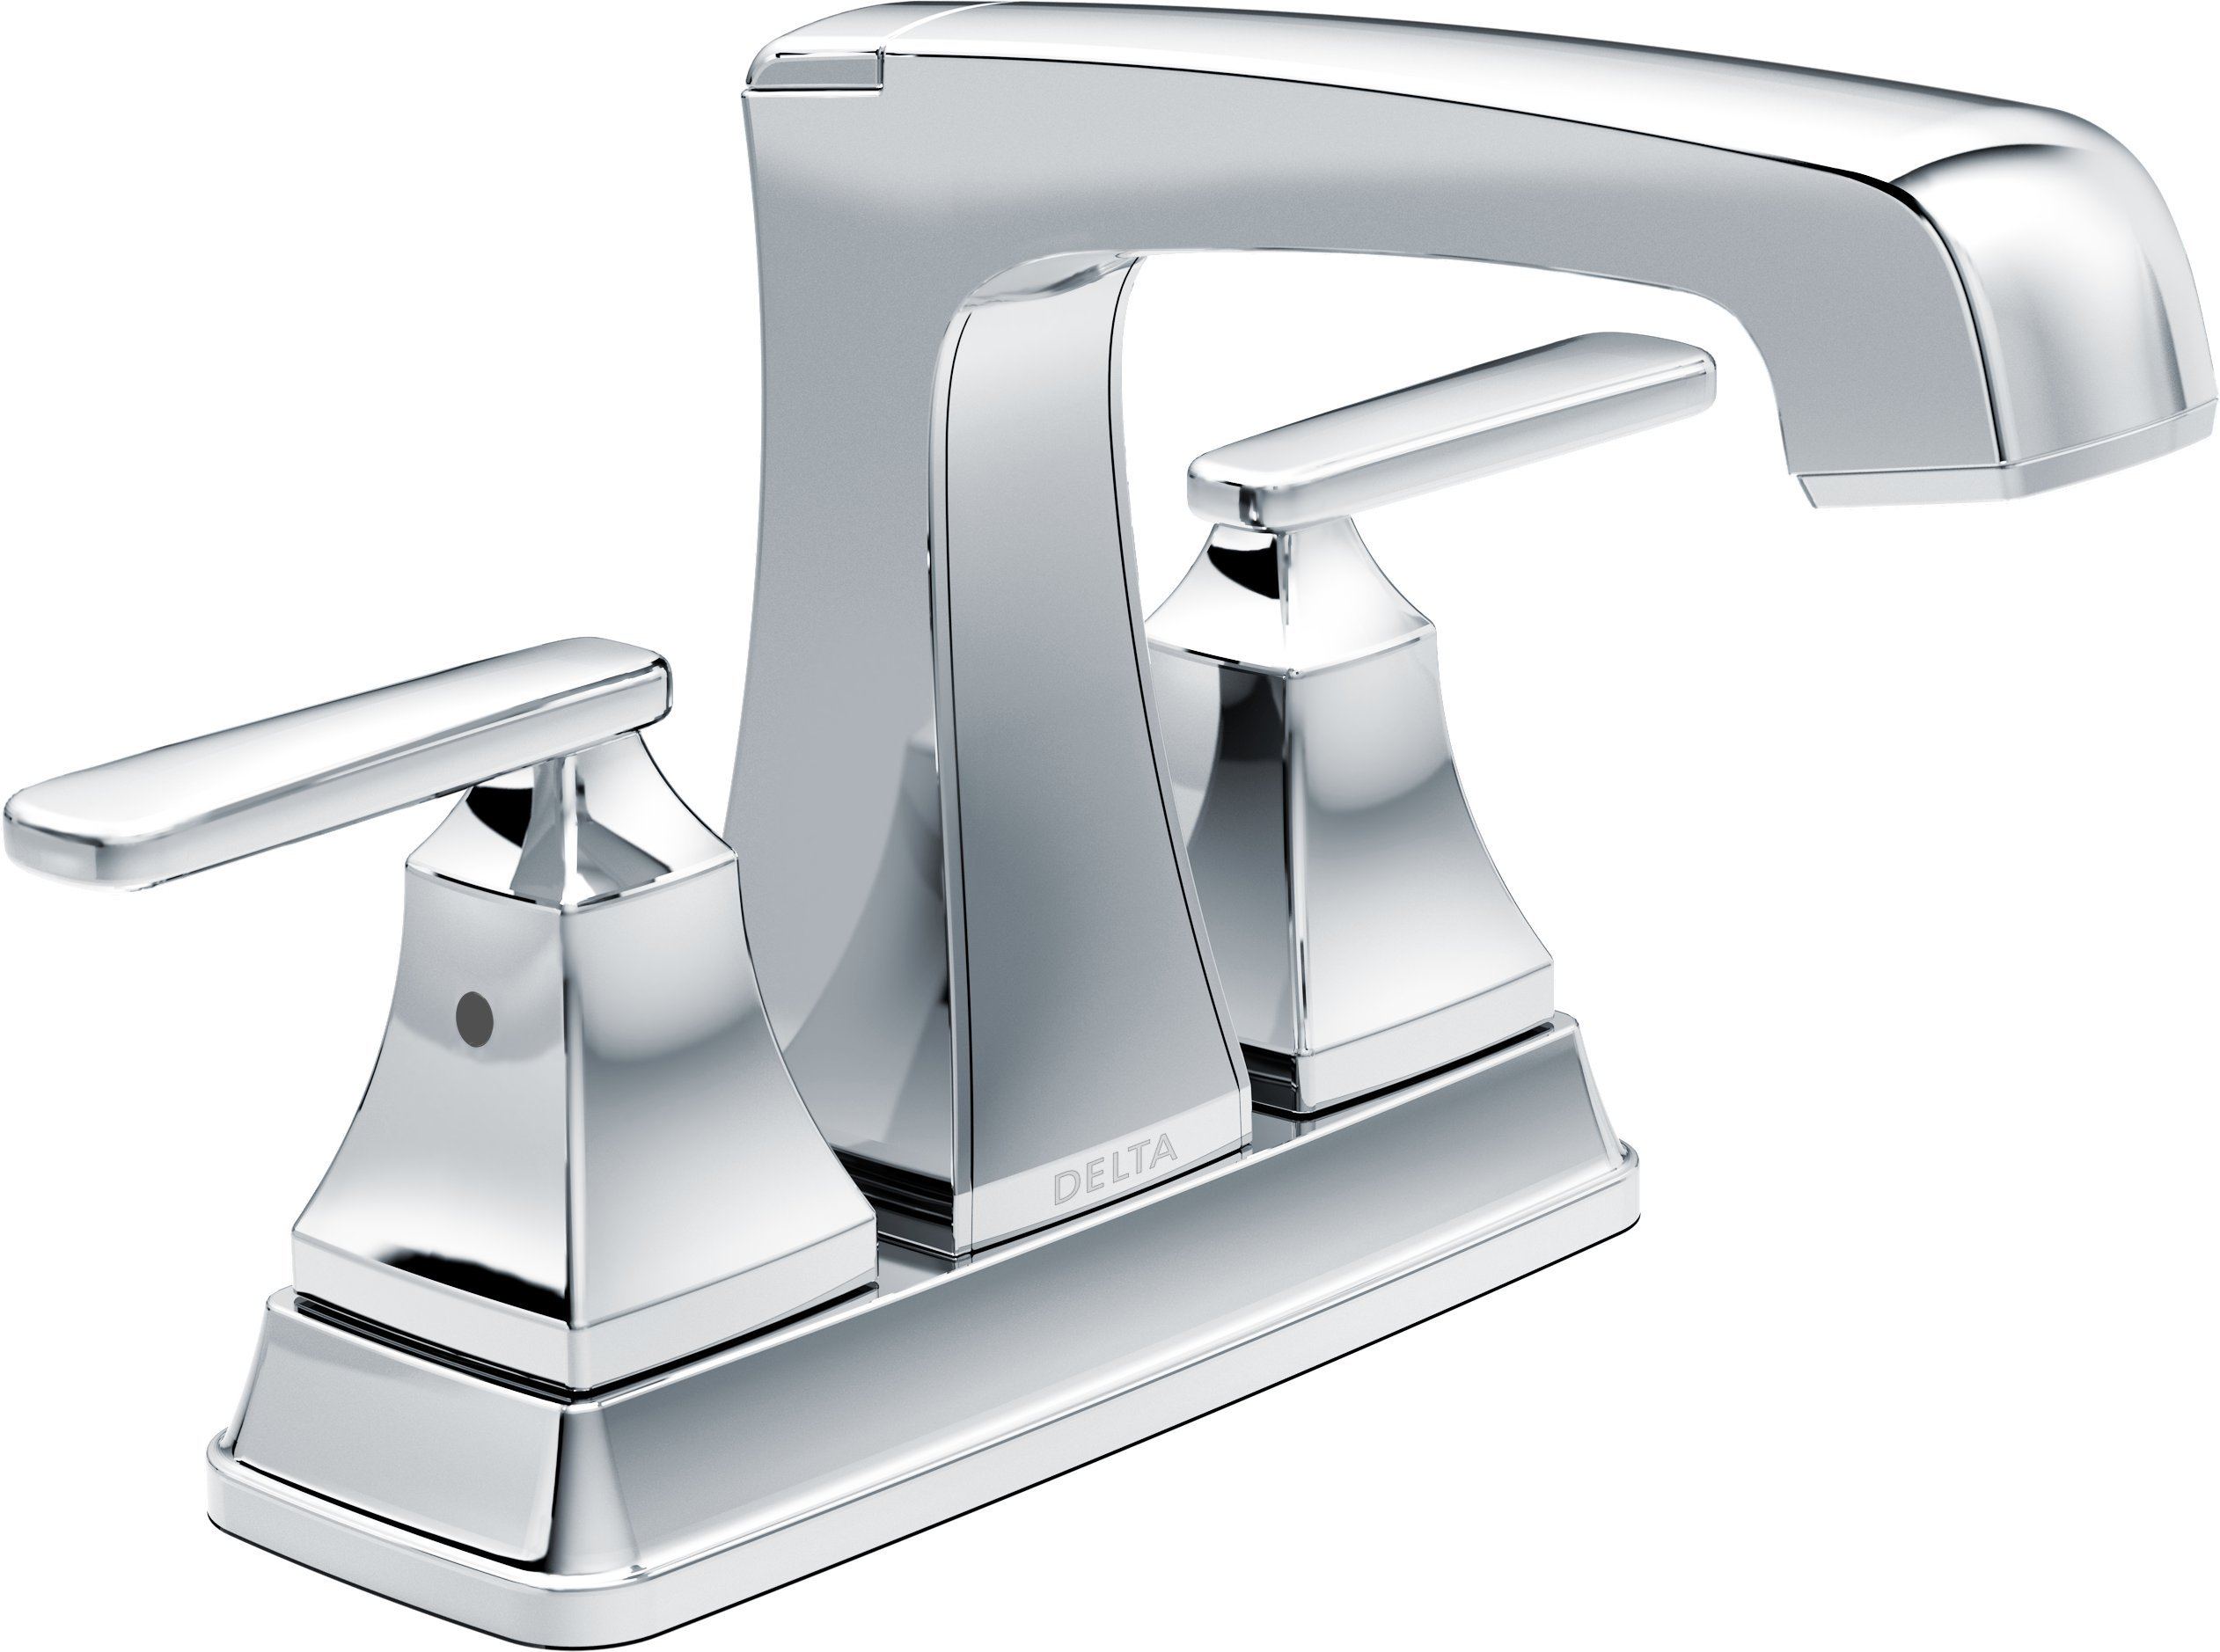 Delta Ashlyn 2-Handle Centerset Bathroom Faucet with Diamond Seal Technology and Metal Drain Assembly, Chrome 2564-MPU-DST